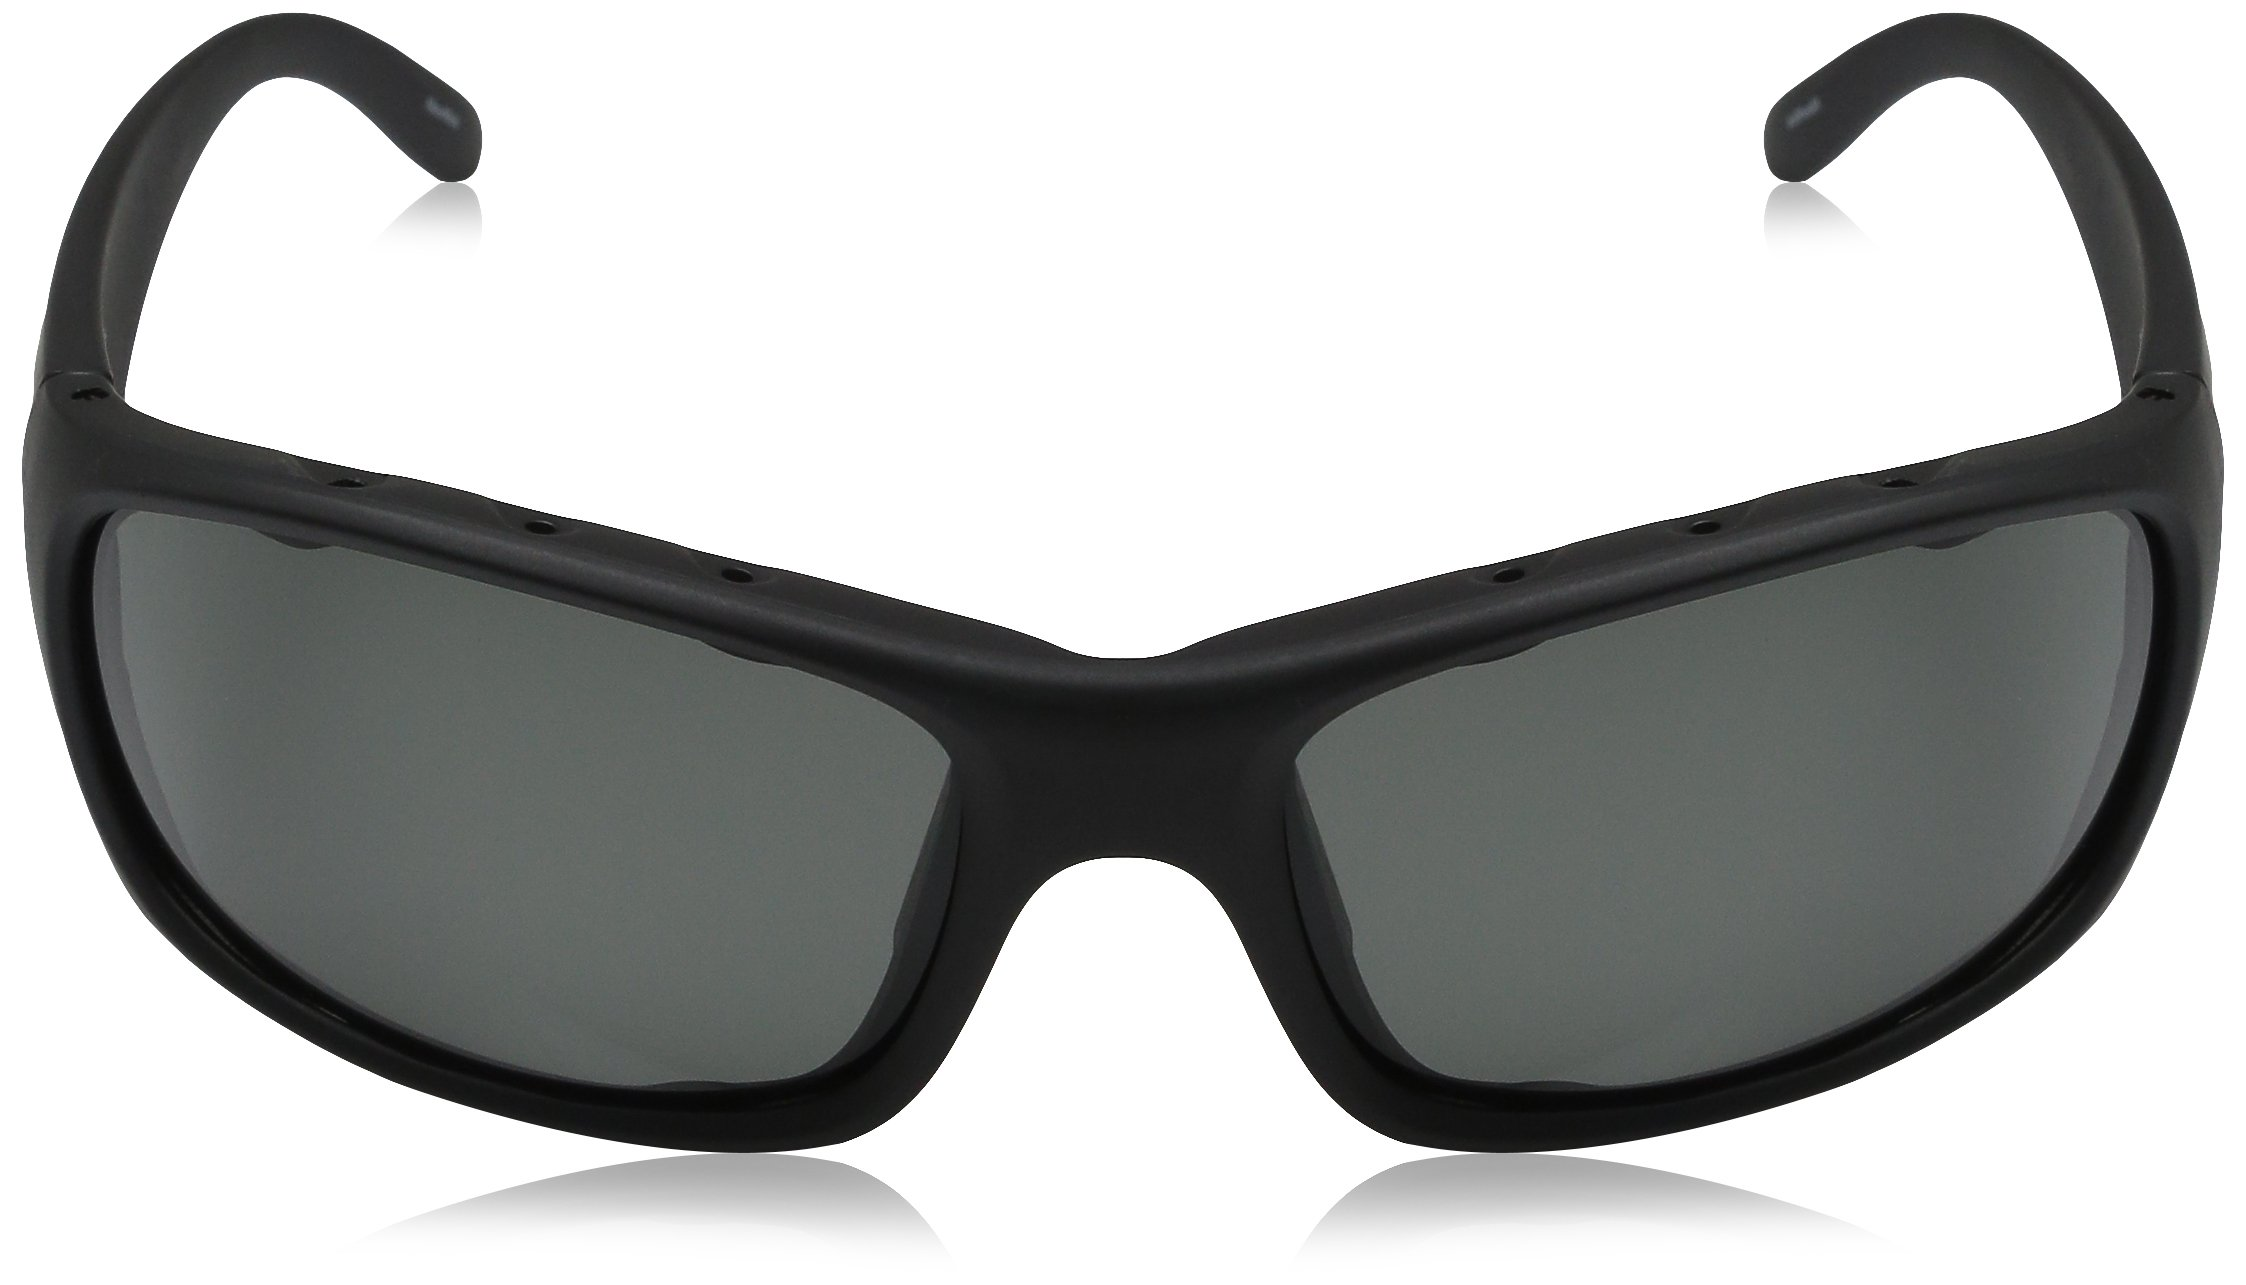 6c98b5d640bbc Buyr.com - Native Eyewear Bomber Sunglasses